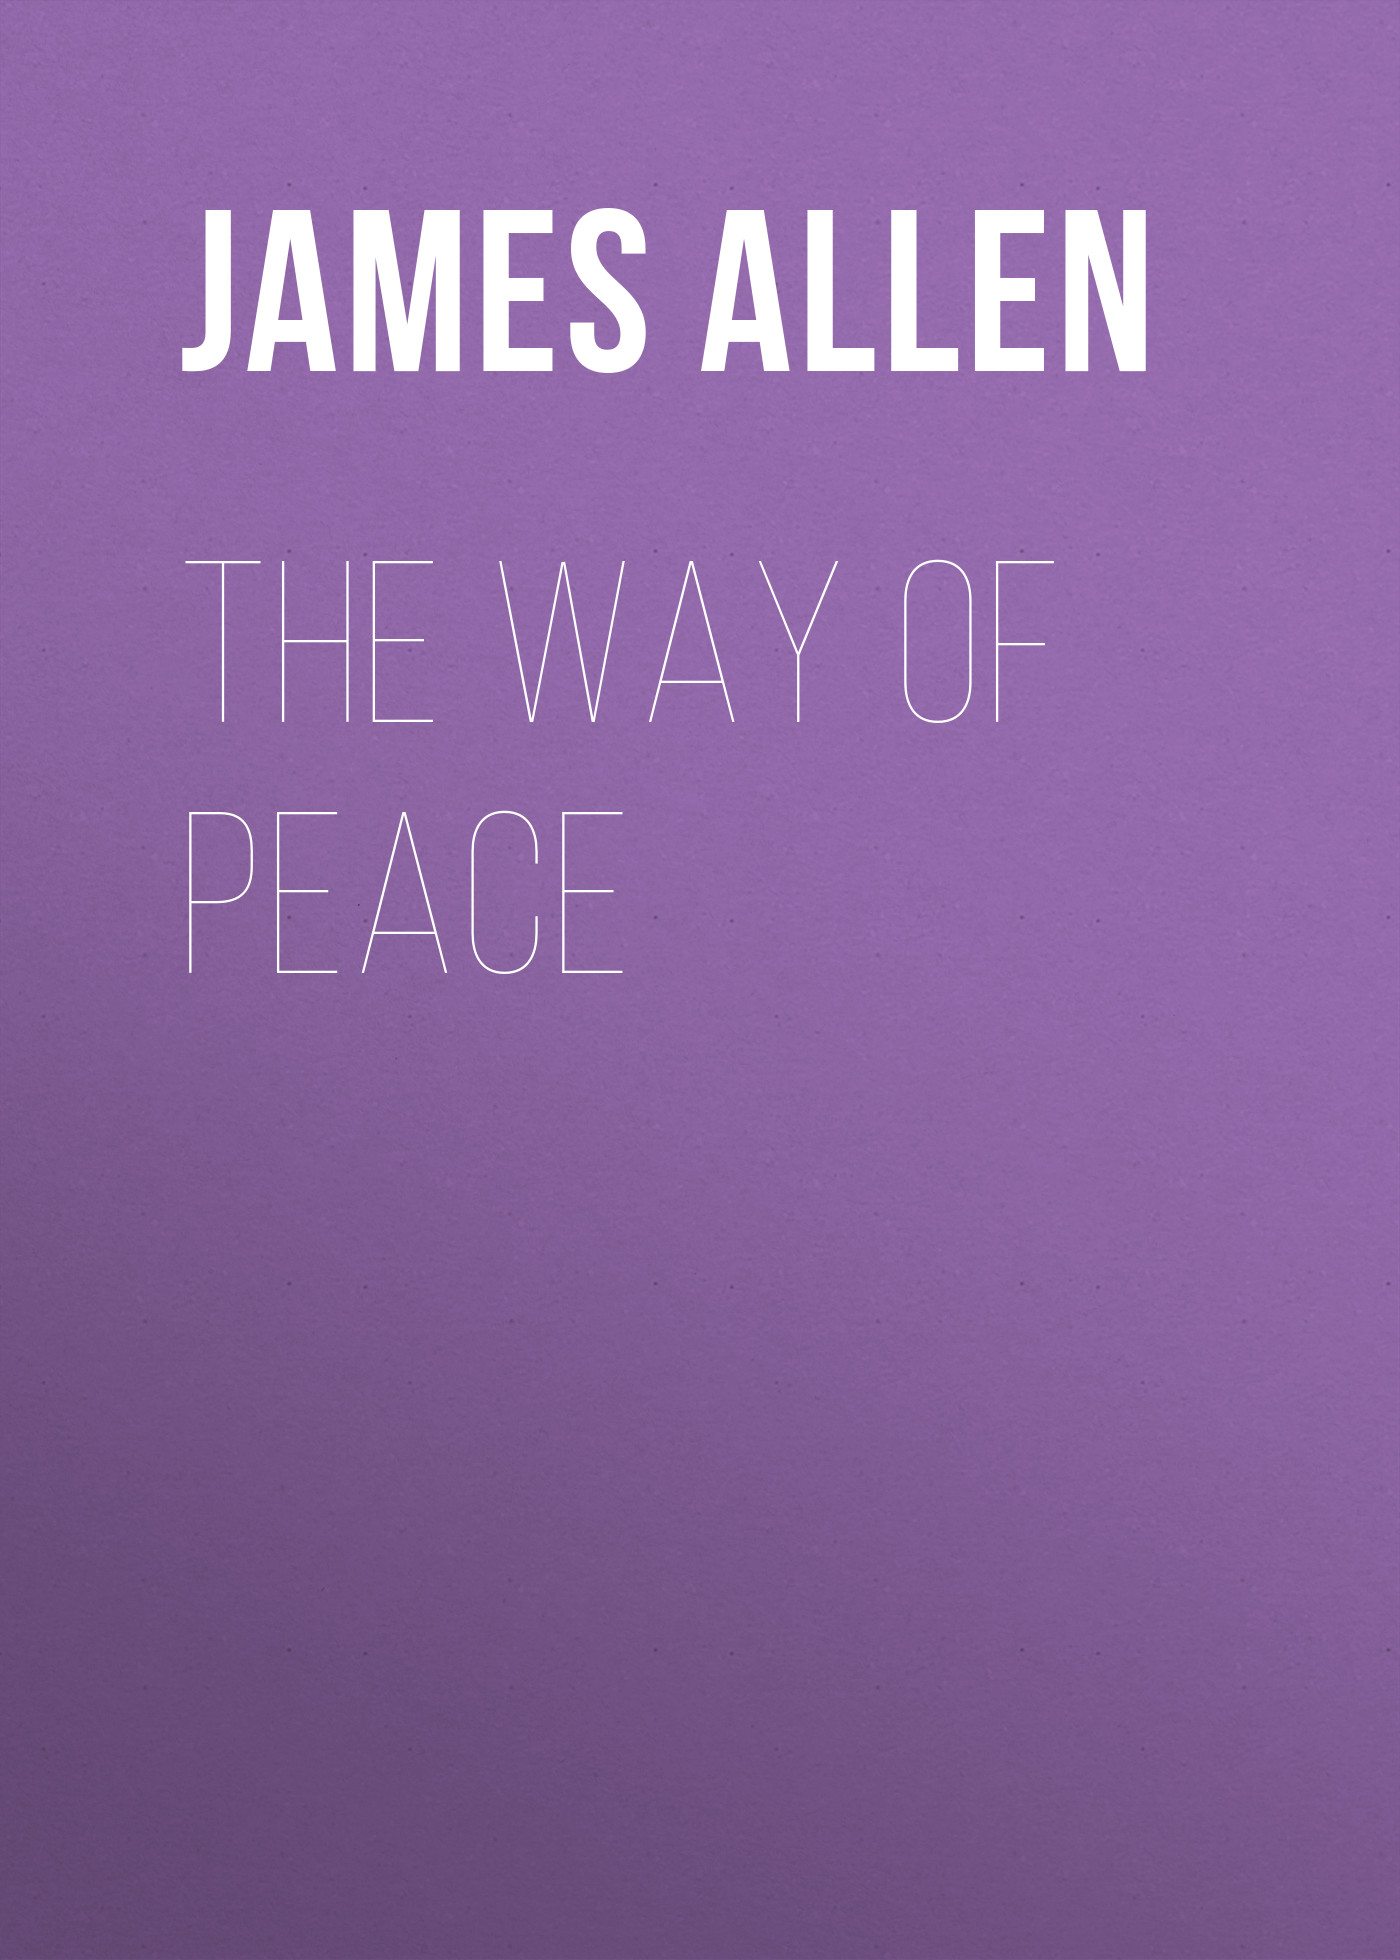 James Allen The Way of Peace allen james lane the last christmas tree an idyl of immortality